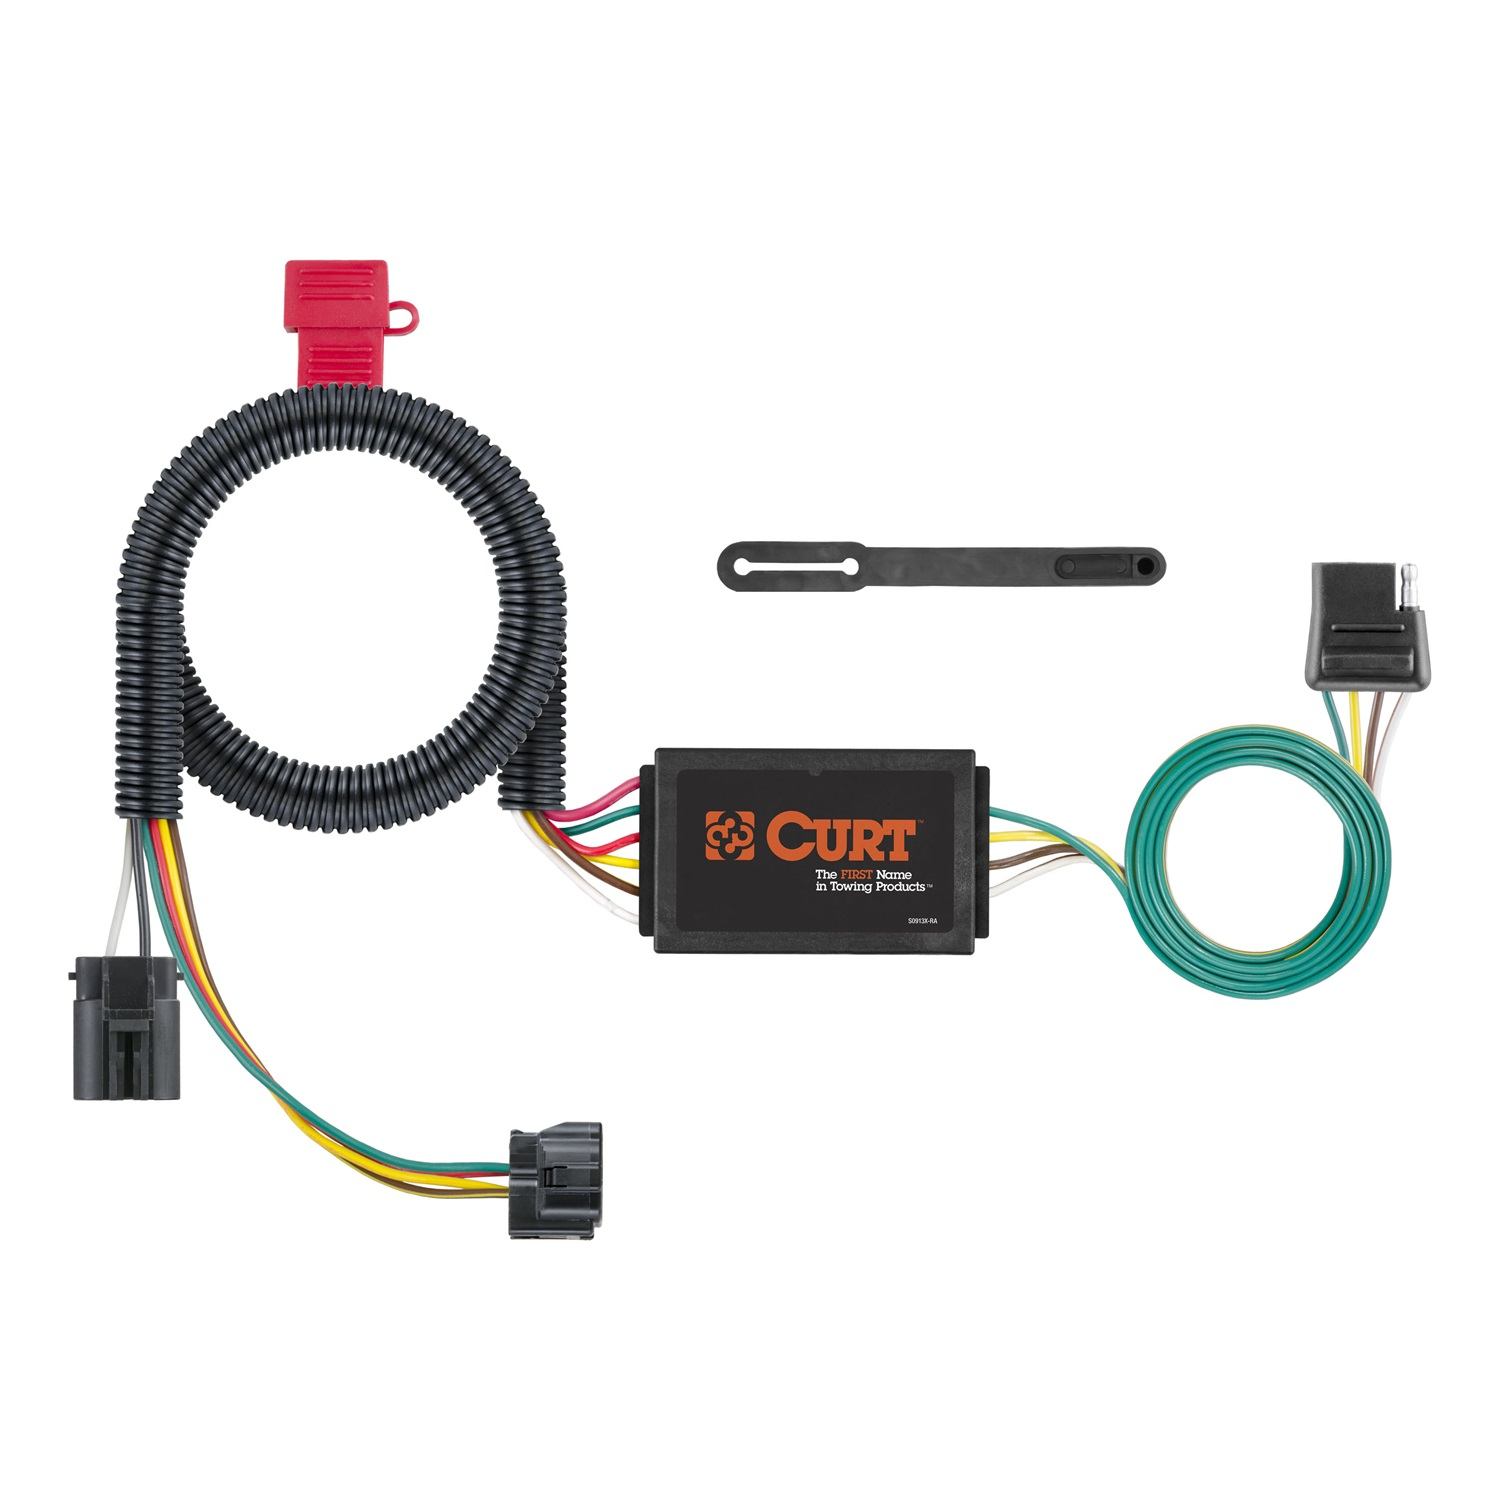 Curt Trailer Hitch Wiring Harness Diagrams Jeep Kit 4 Way Light Plug N Play With 7 Pin Diagram